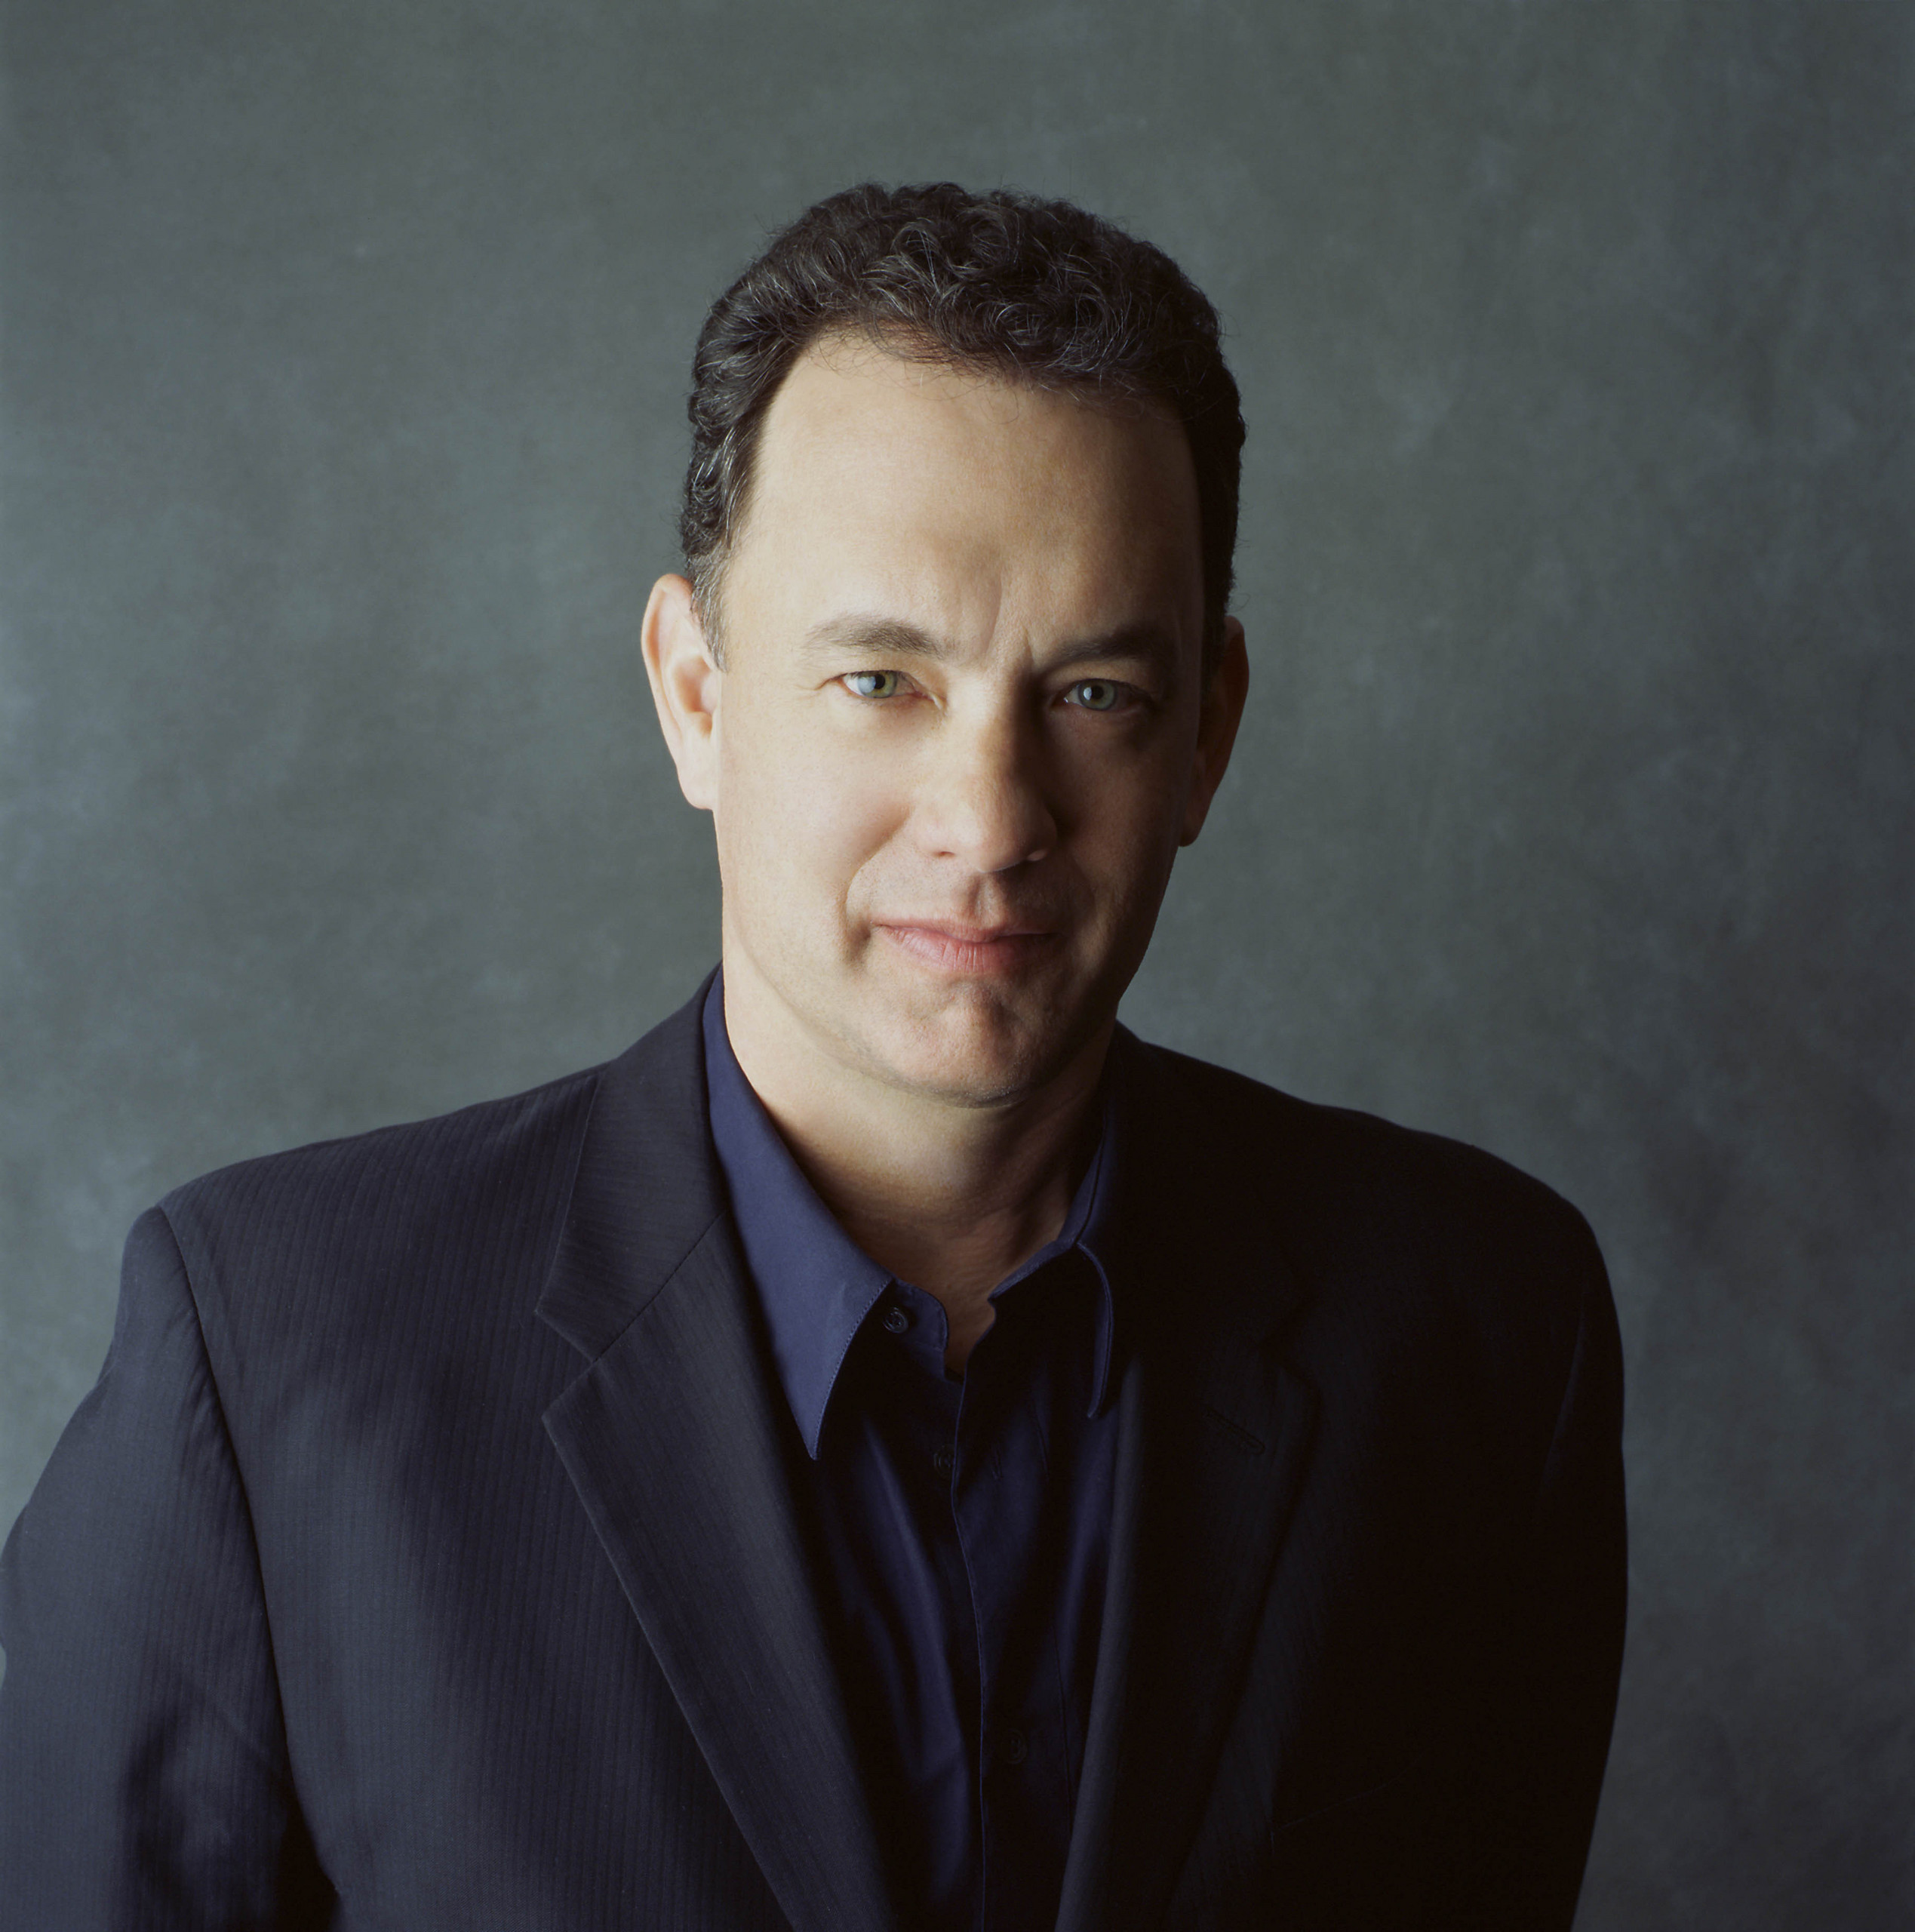 Tom Hanks - Photos